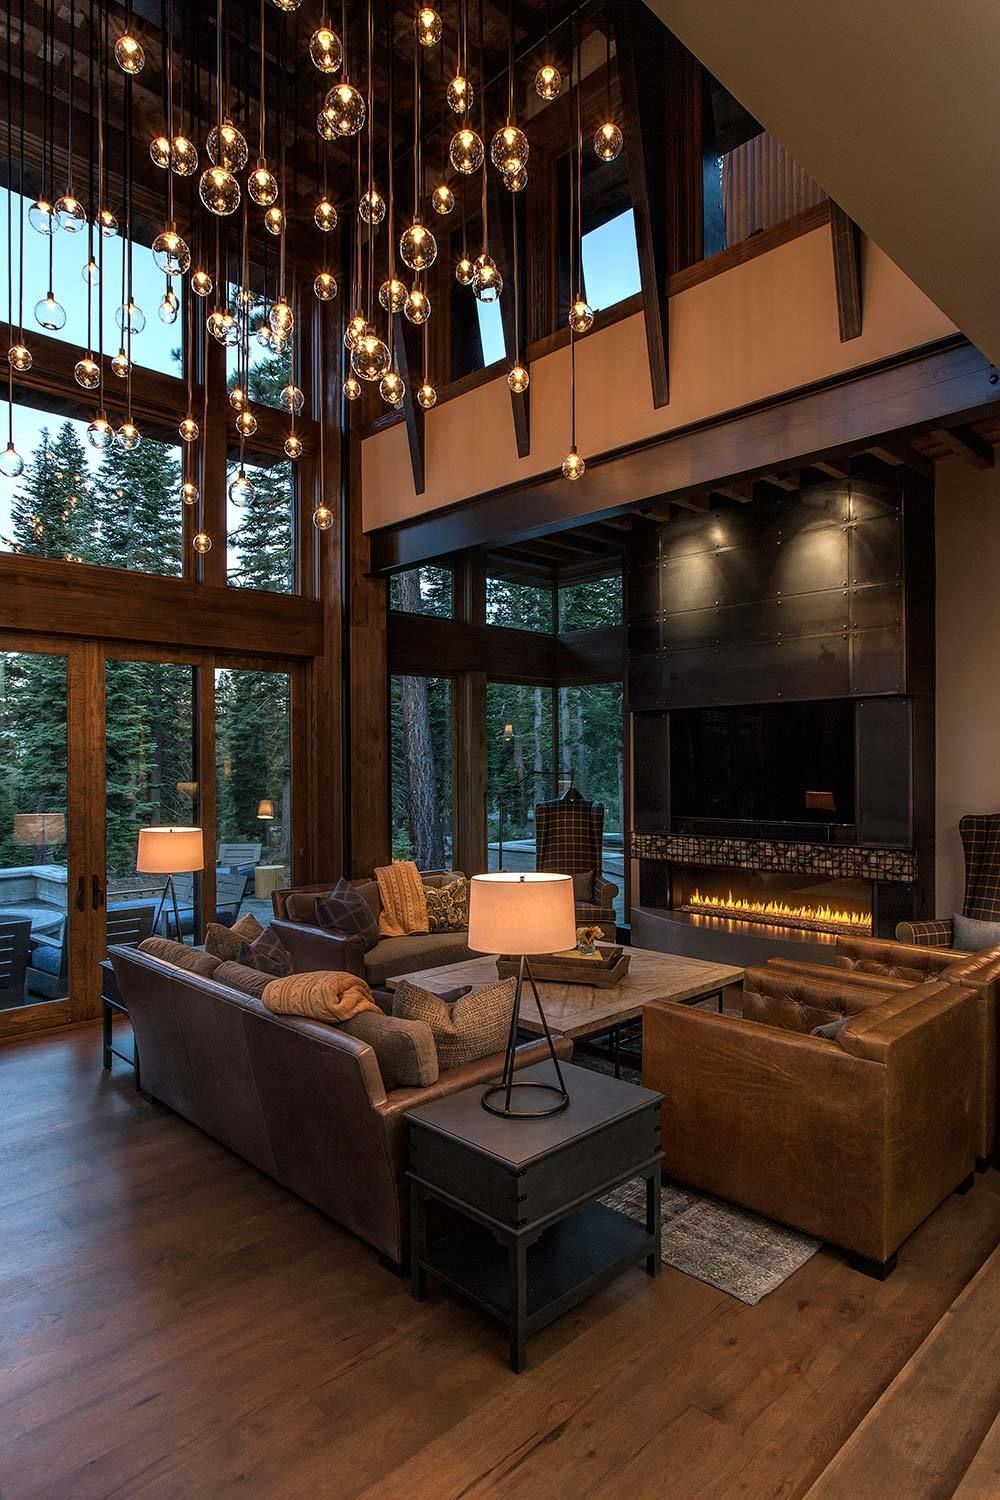 designed as a family getaway by studio v interior design this rustic modern home is - Modern Home Design Furniture